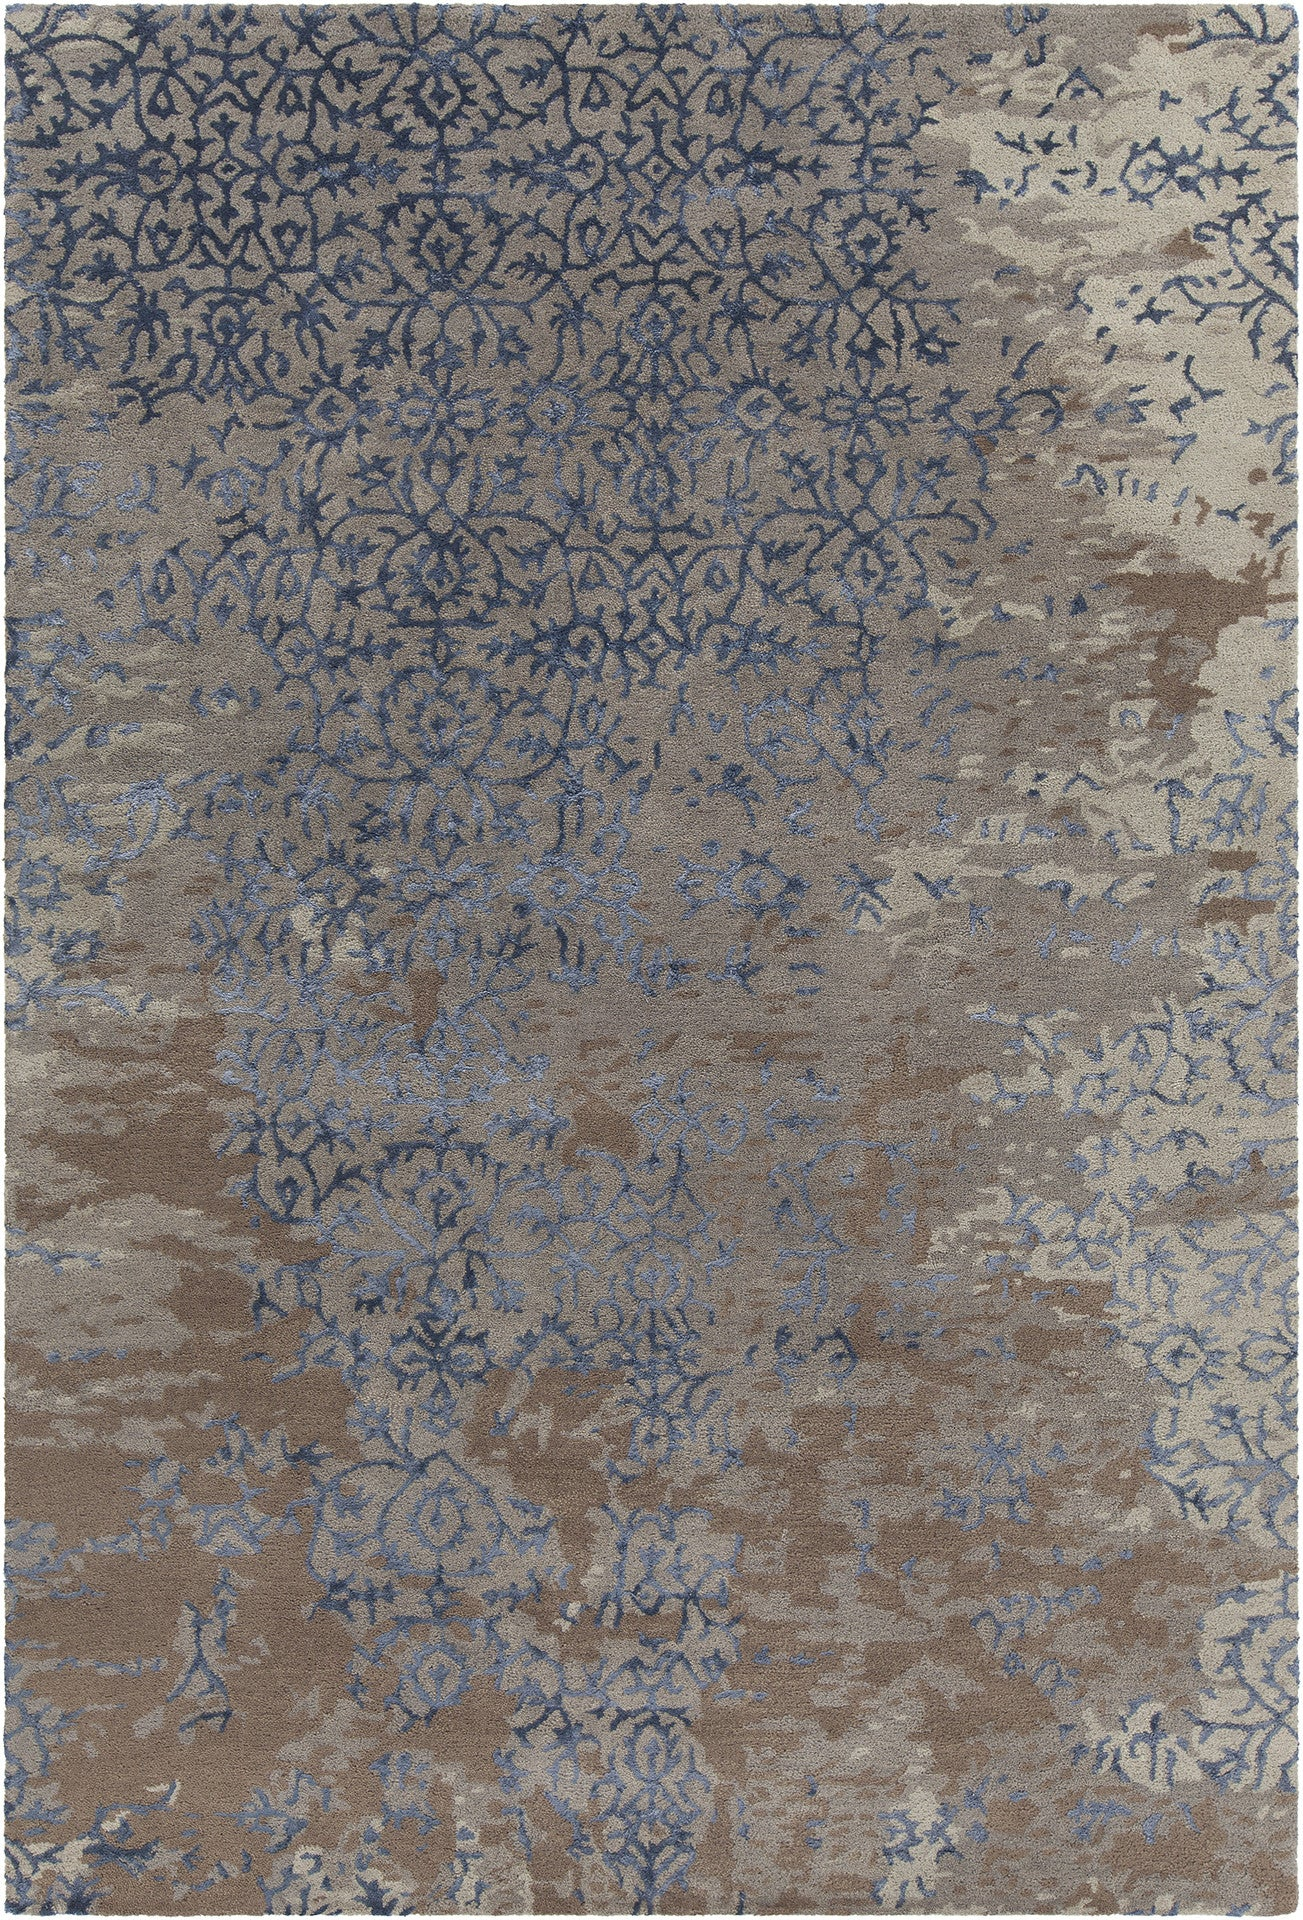 Rupec Collection Hand Tufted Area Rug In Grey Blue